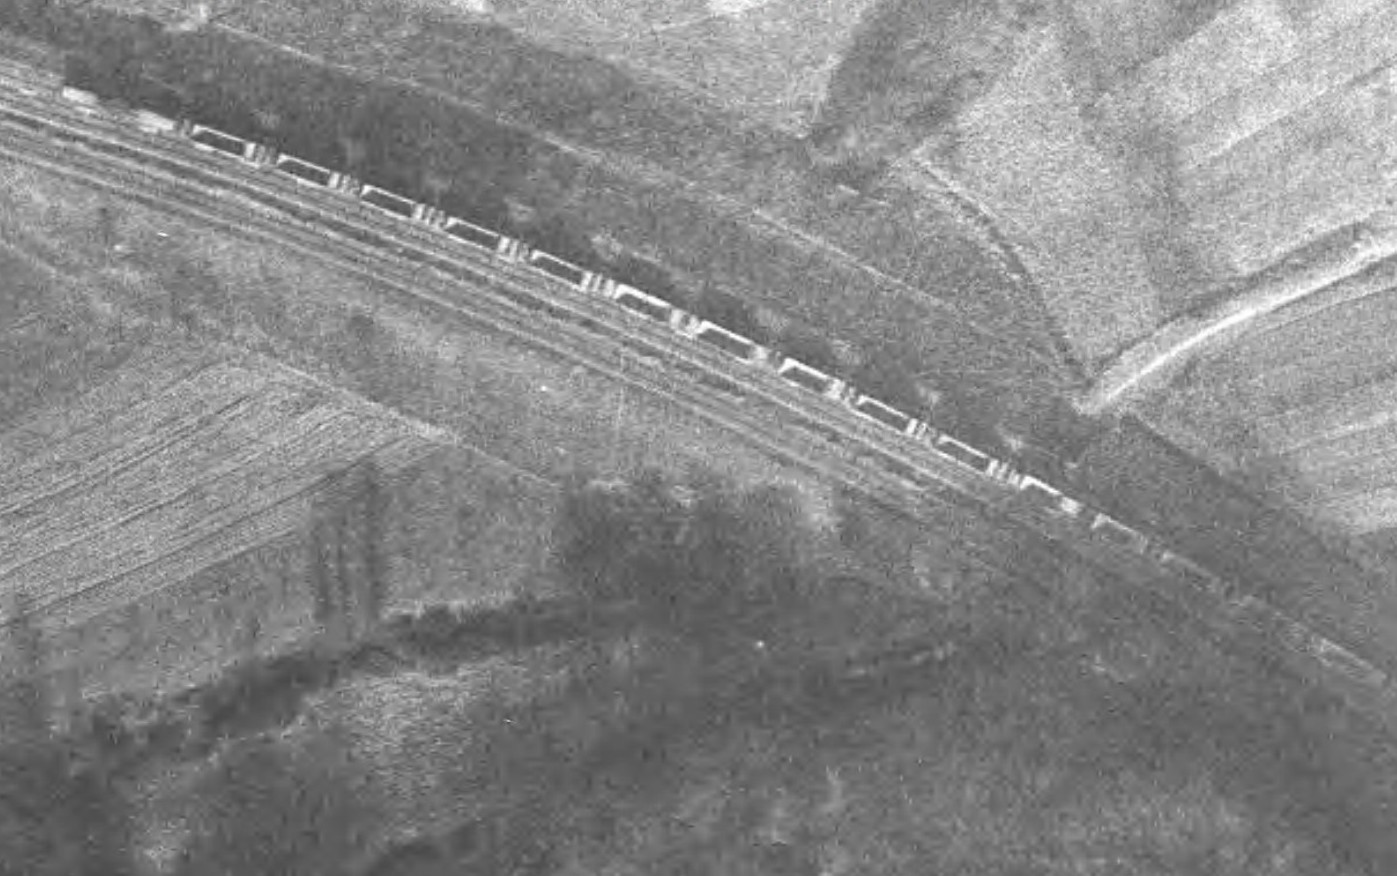 Train de trémies vides - entre Hargarten et Téterchen en 1961 - Géoportail.jpg